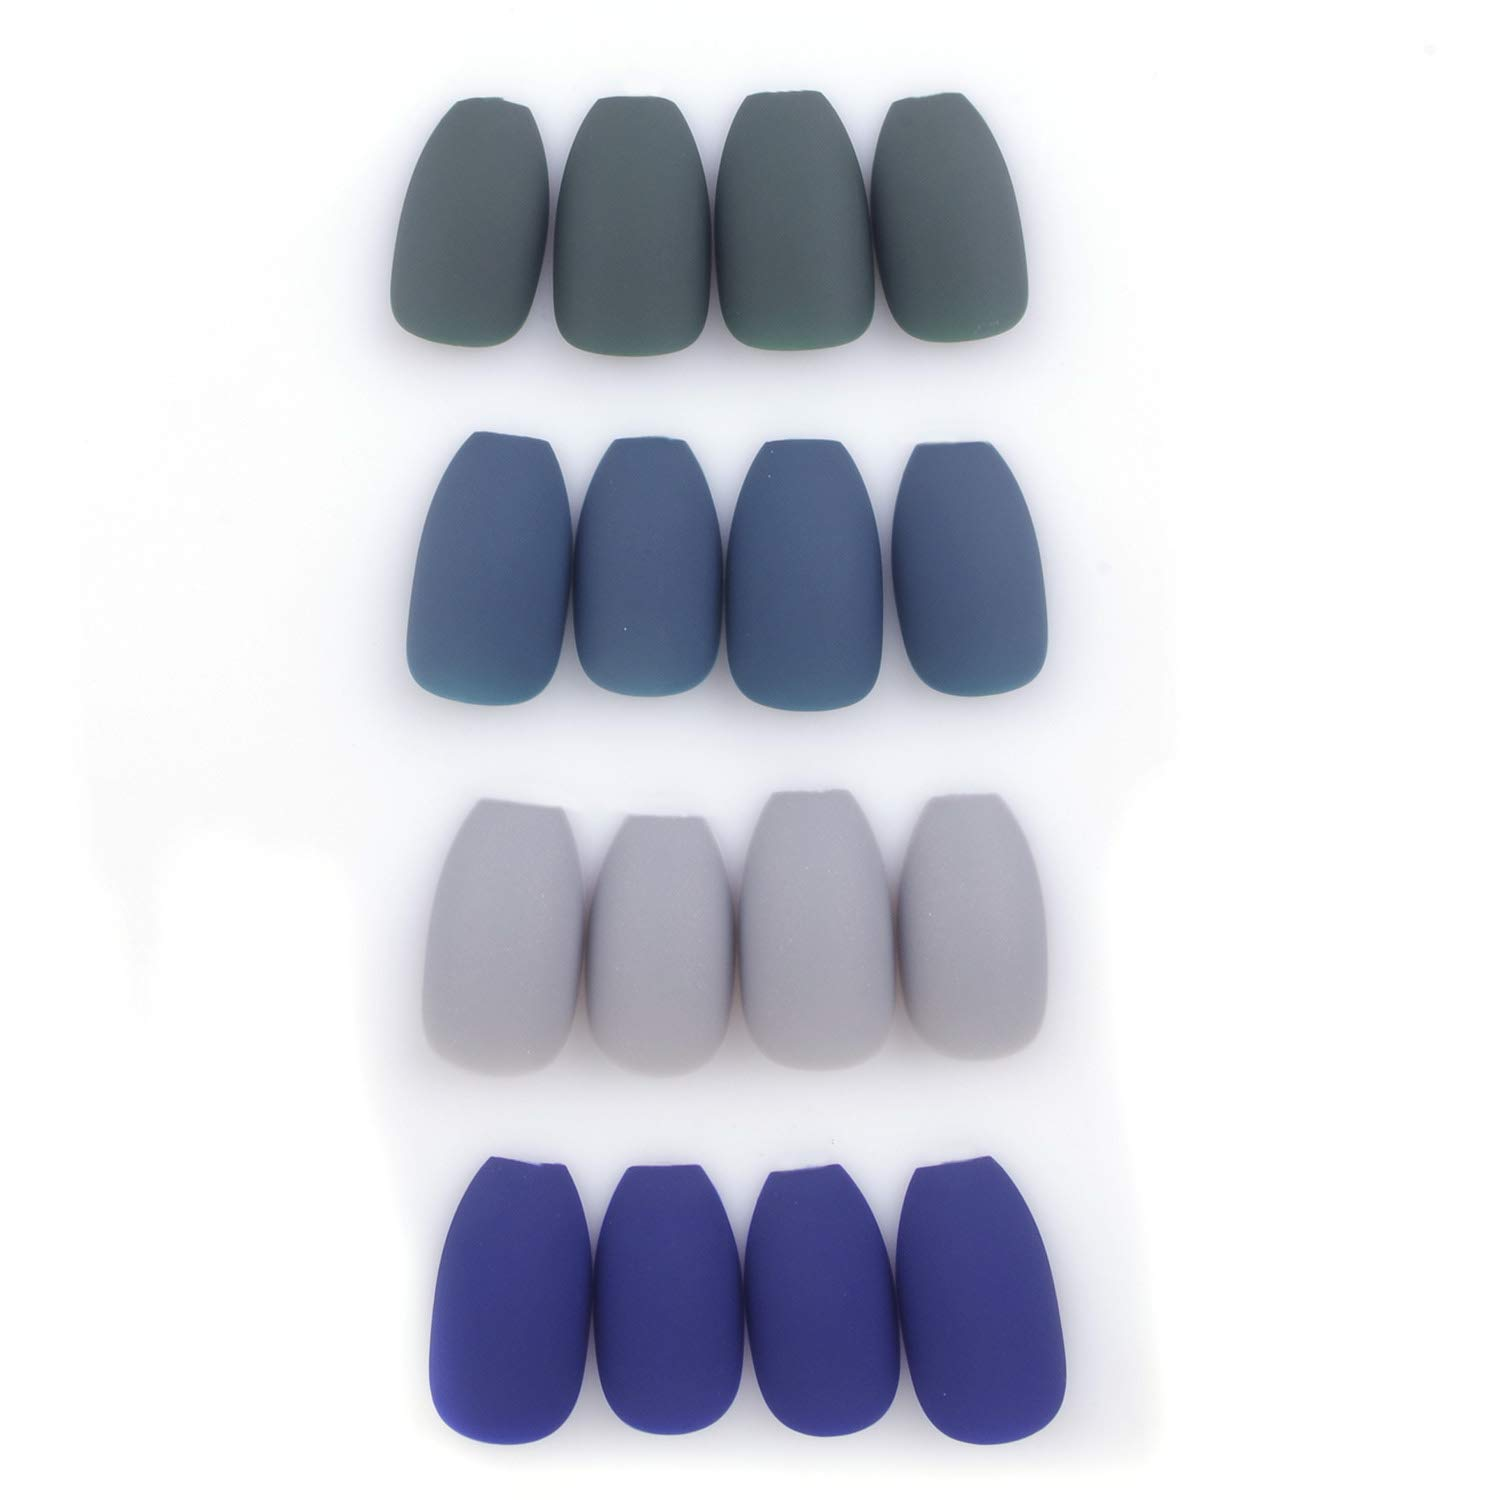 Laza 96 Pcs Colorful Fake Nails 4 Pack Olive Sapphire Misty Grey Full Cover Coffin Medium Ballet Matte Artificial Acrylic Nails - Peacock Blue (No Glue Included) by Laza